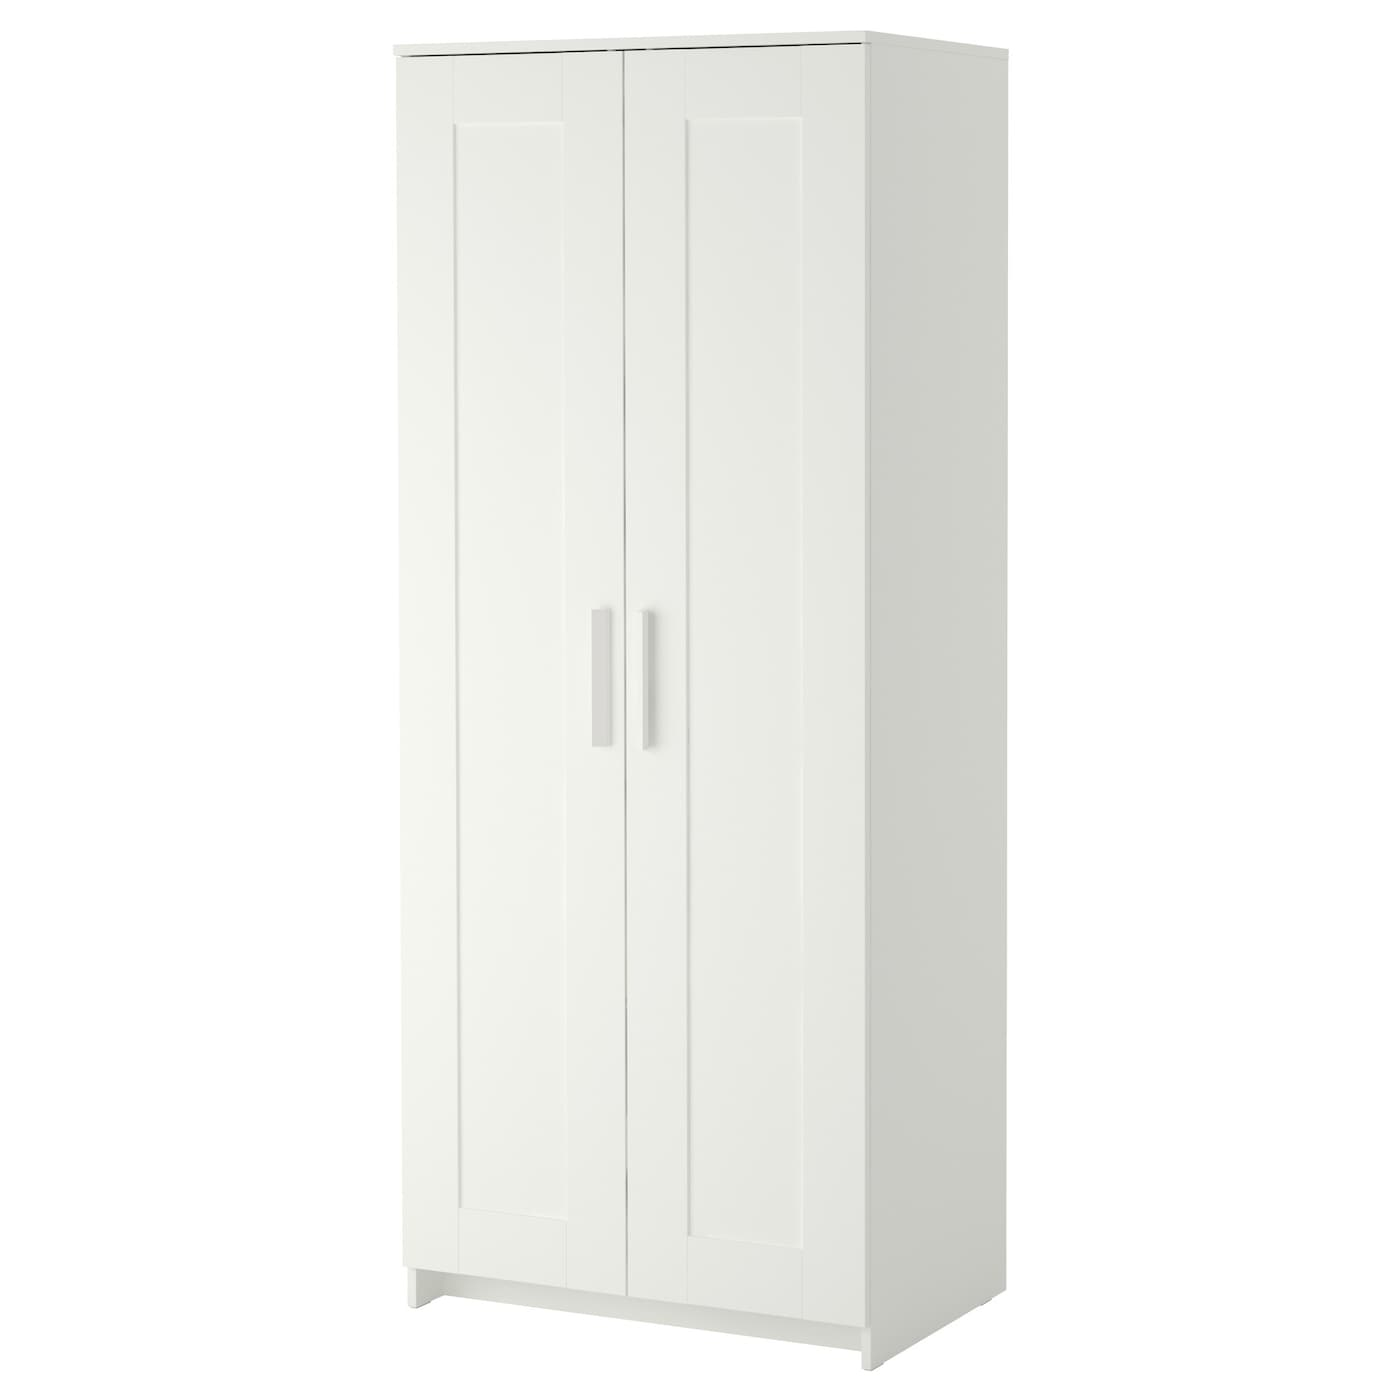 Brimnes wardrobe with 2 doors white 78x190 cm ikea for Schrank 120 breit